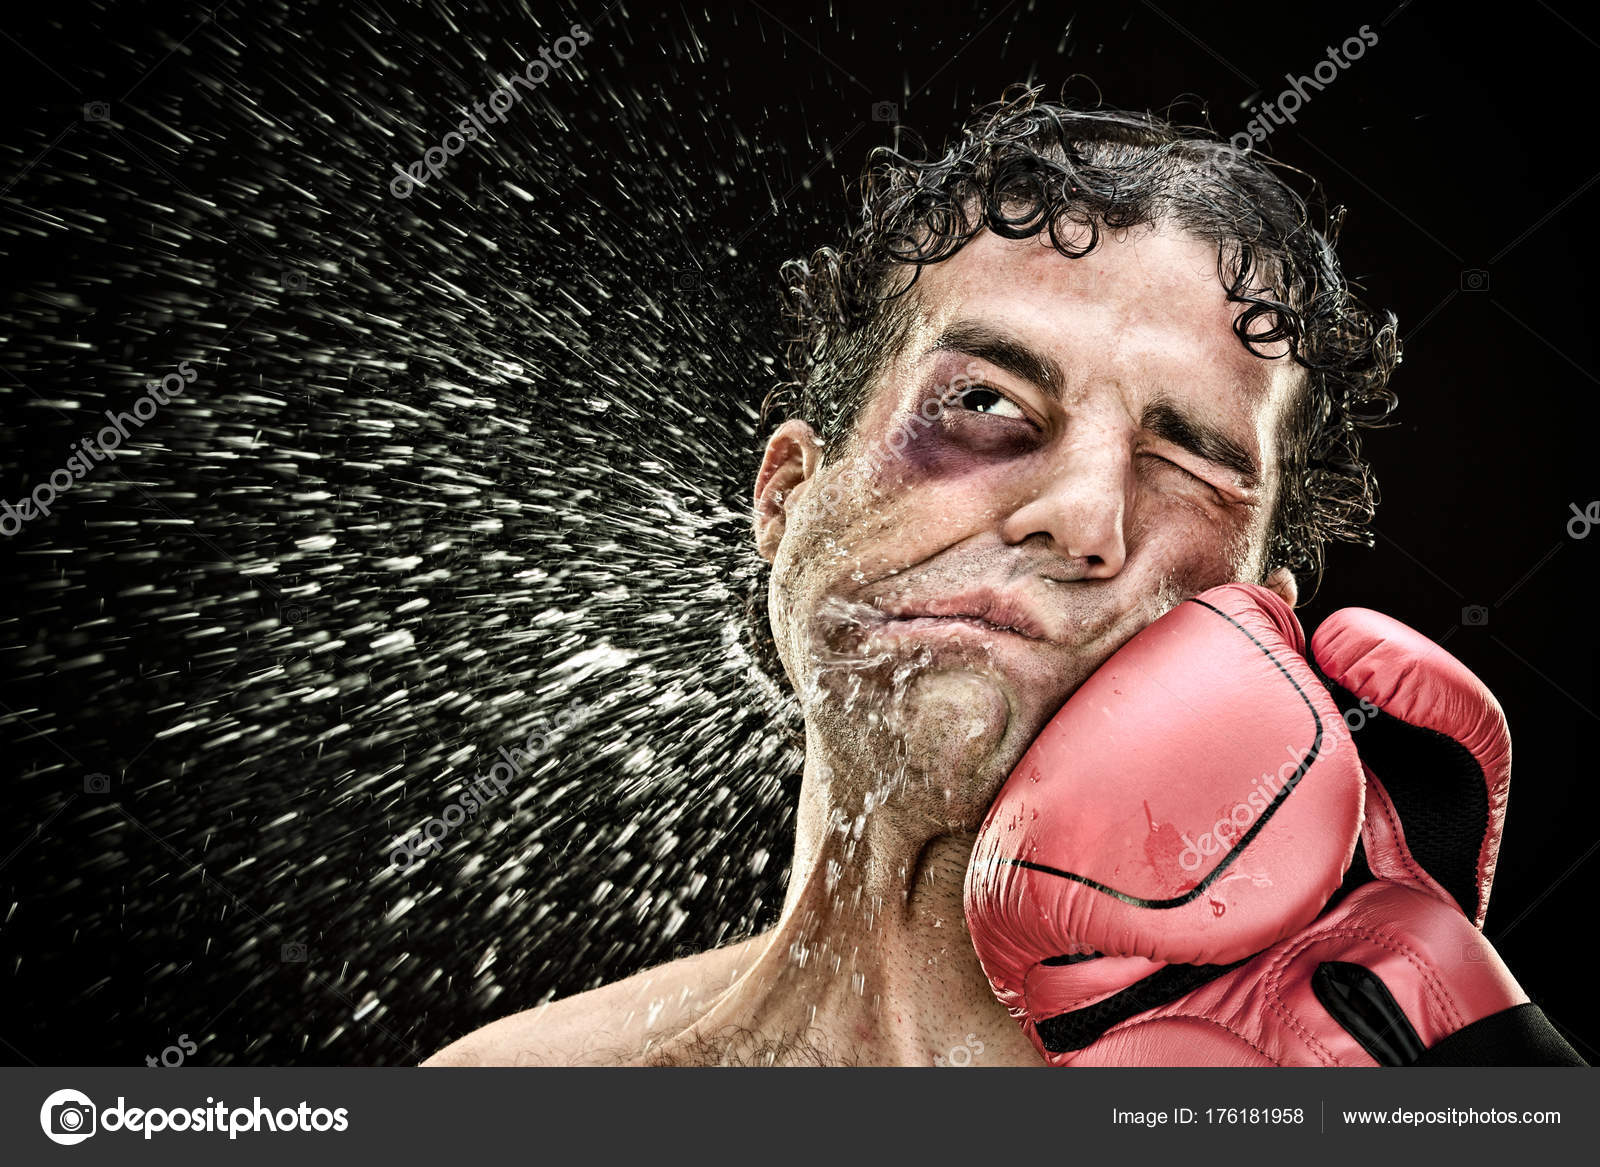 how to take a punch to the face